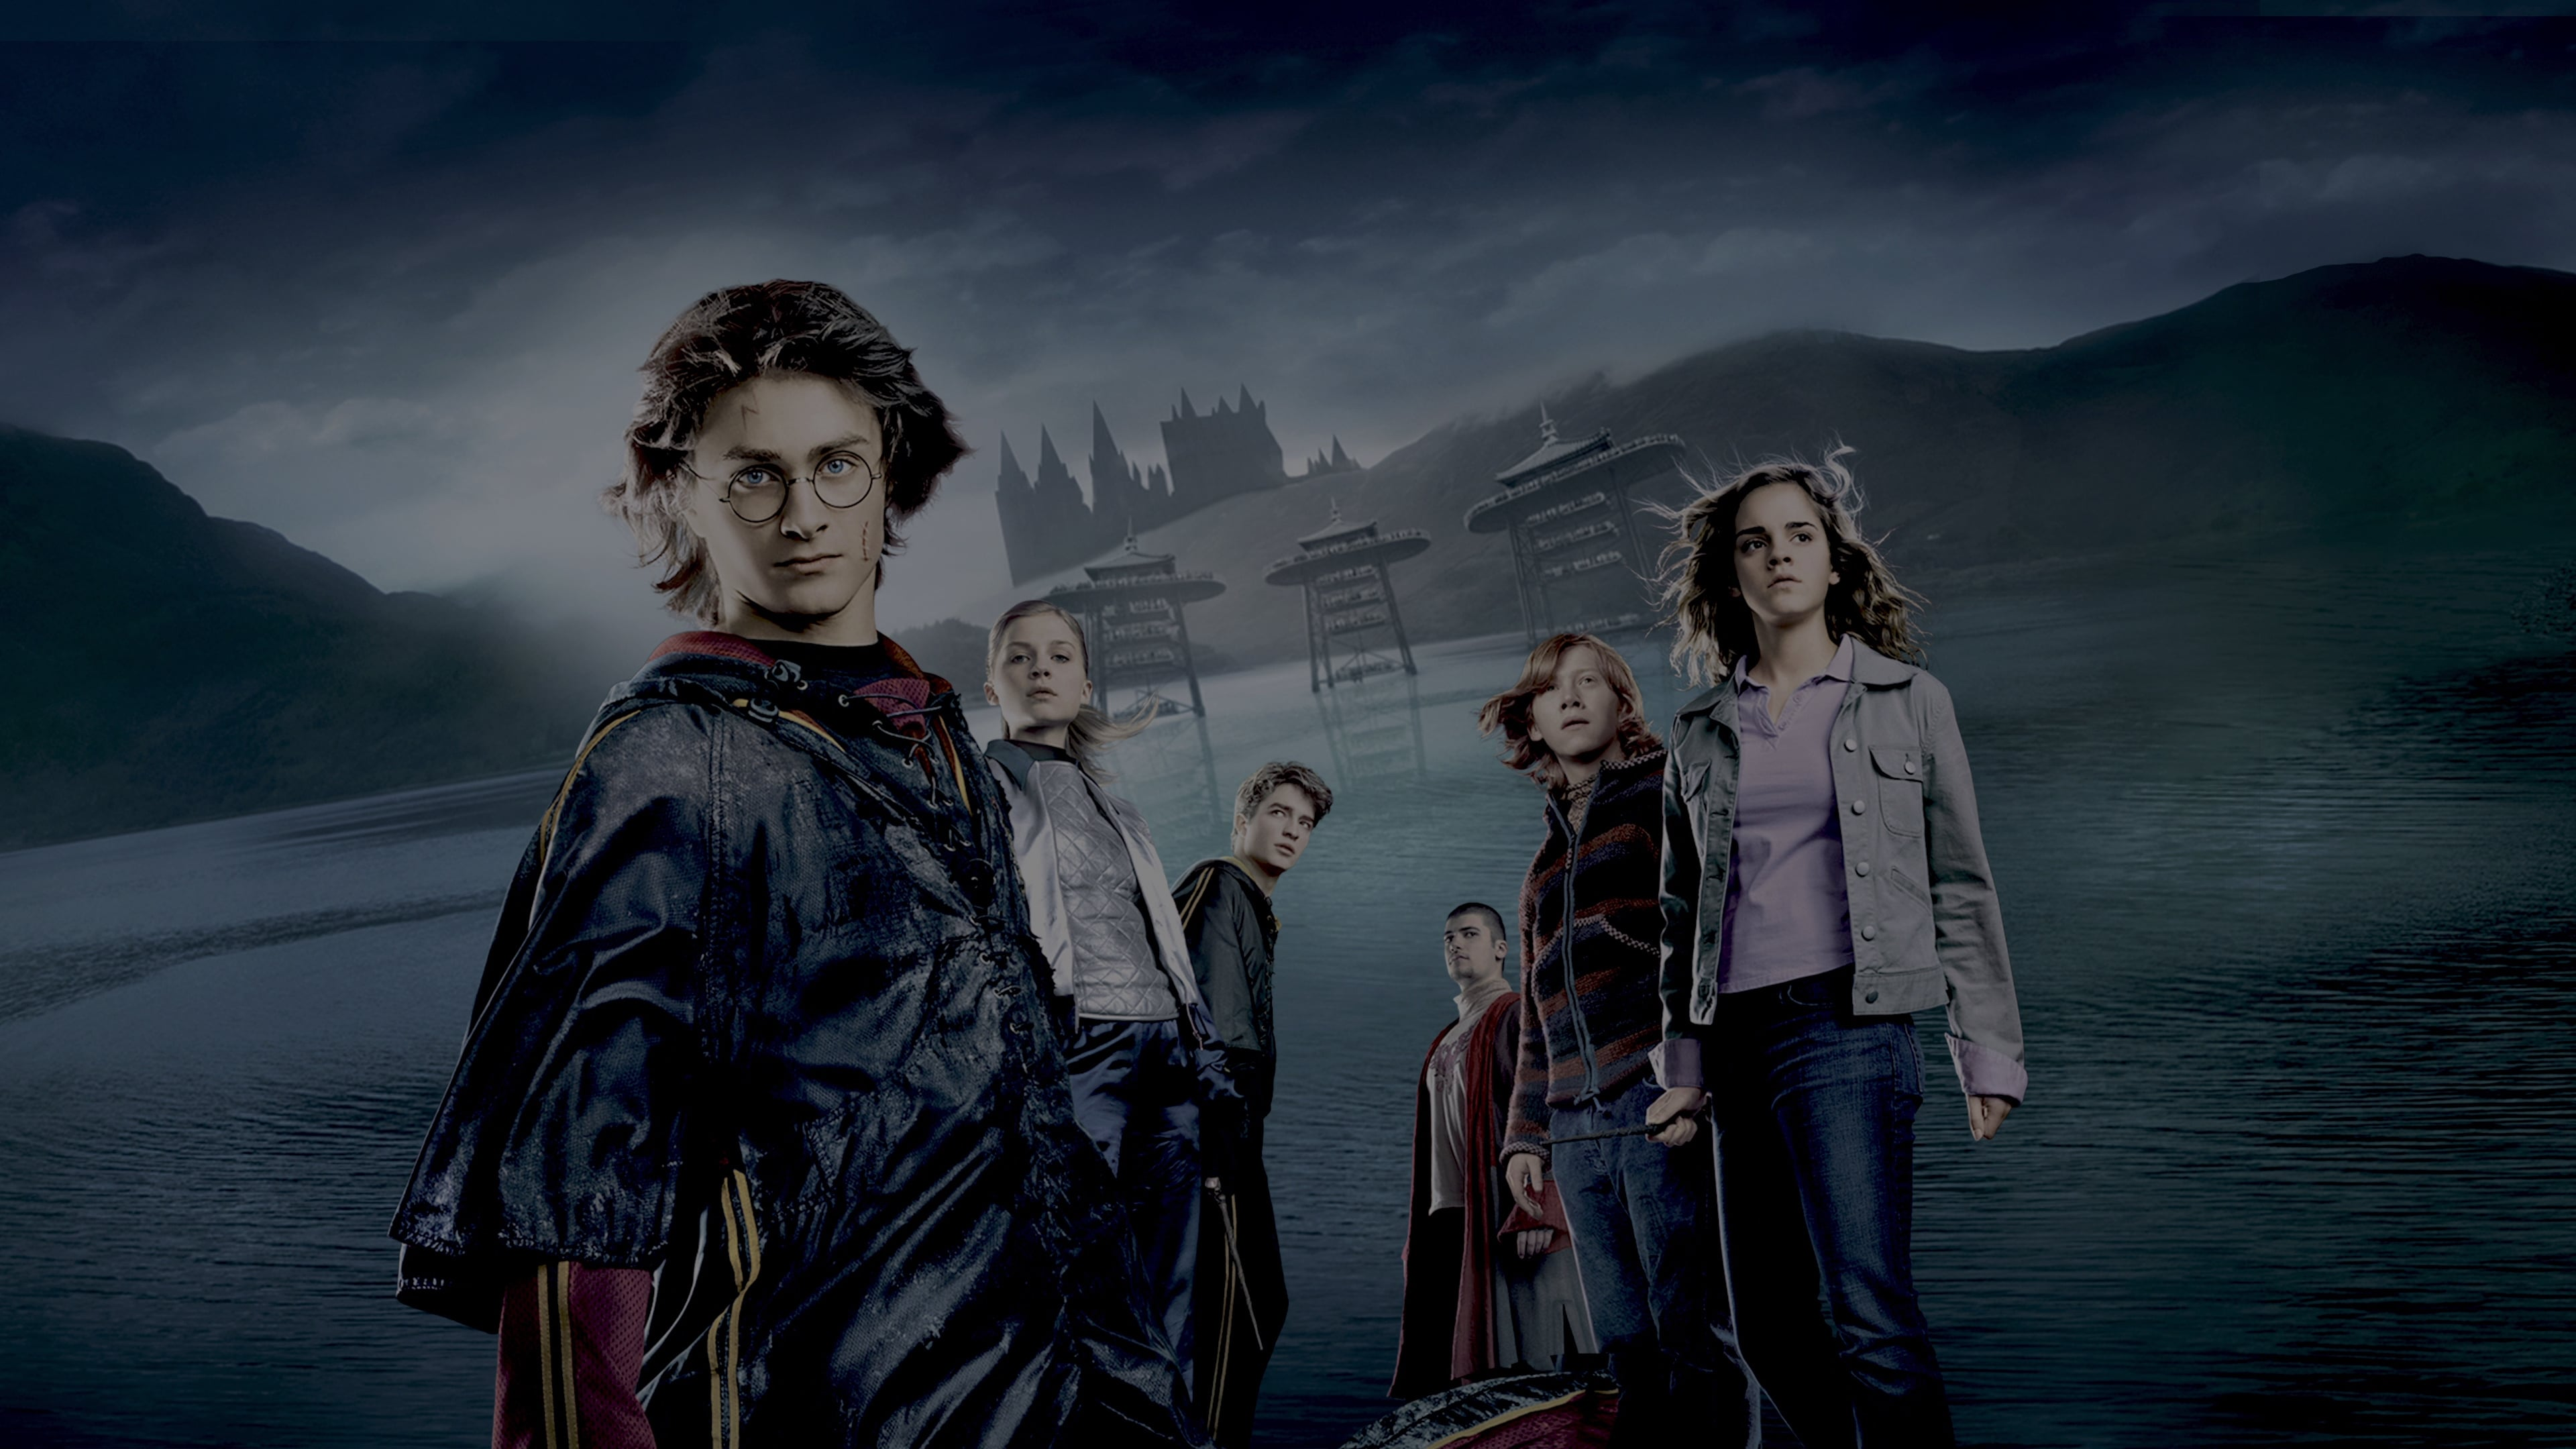 Regarder harry potter et la coupe de feu film streaming - Harry potter la coupe de feu streaming ...